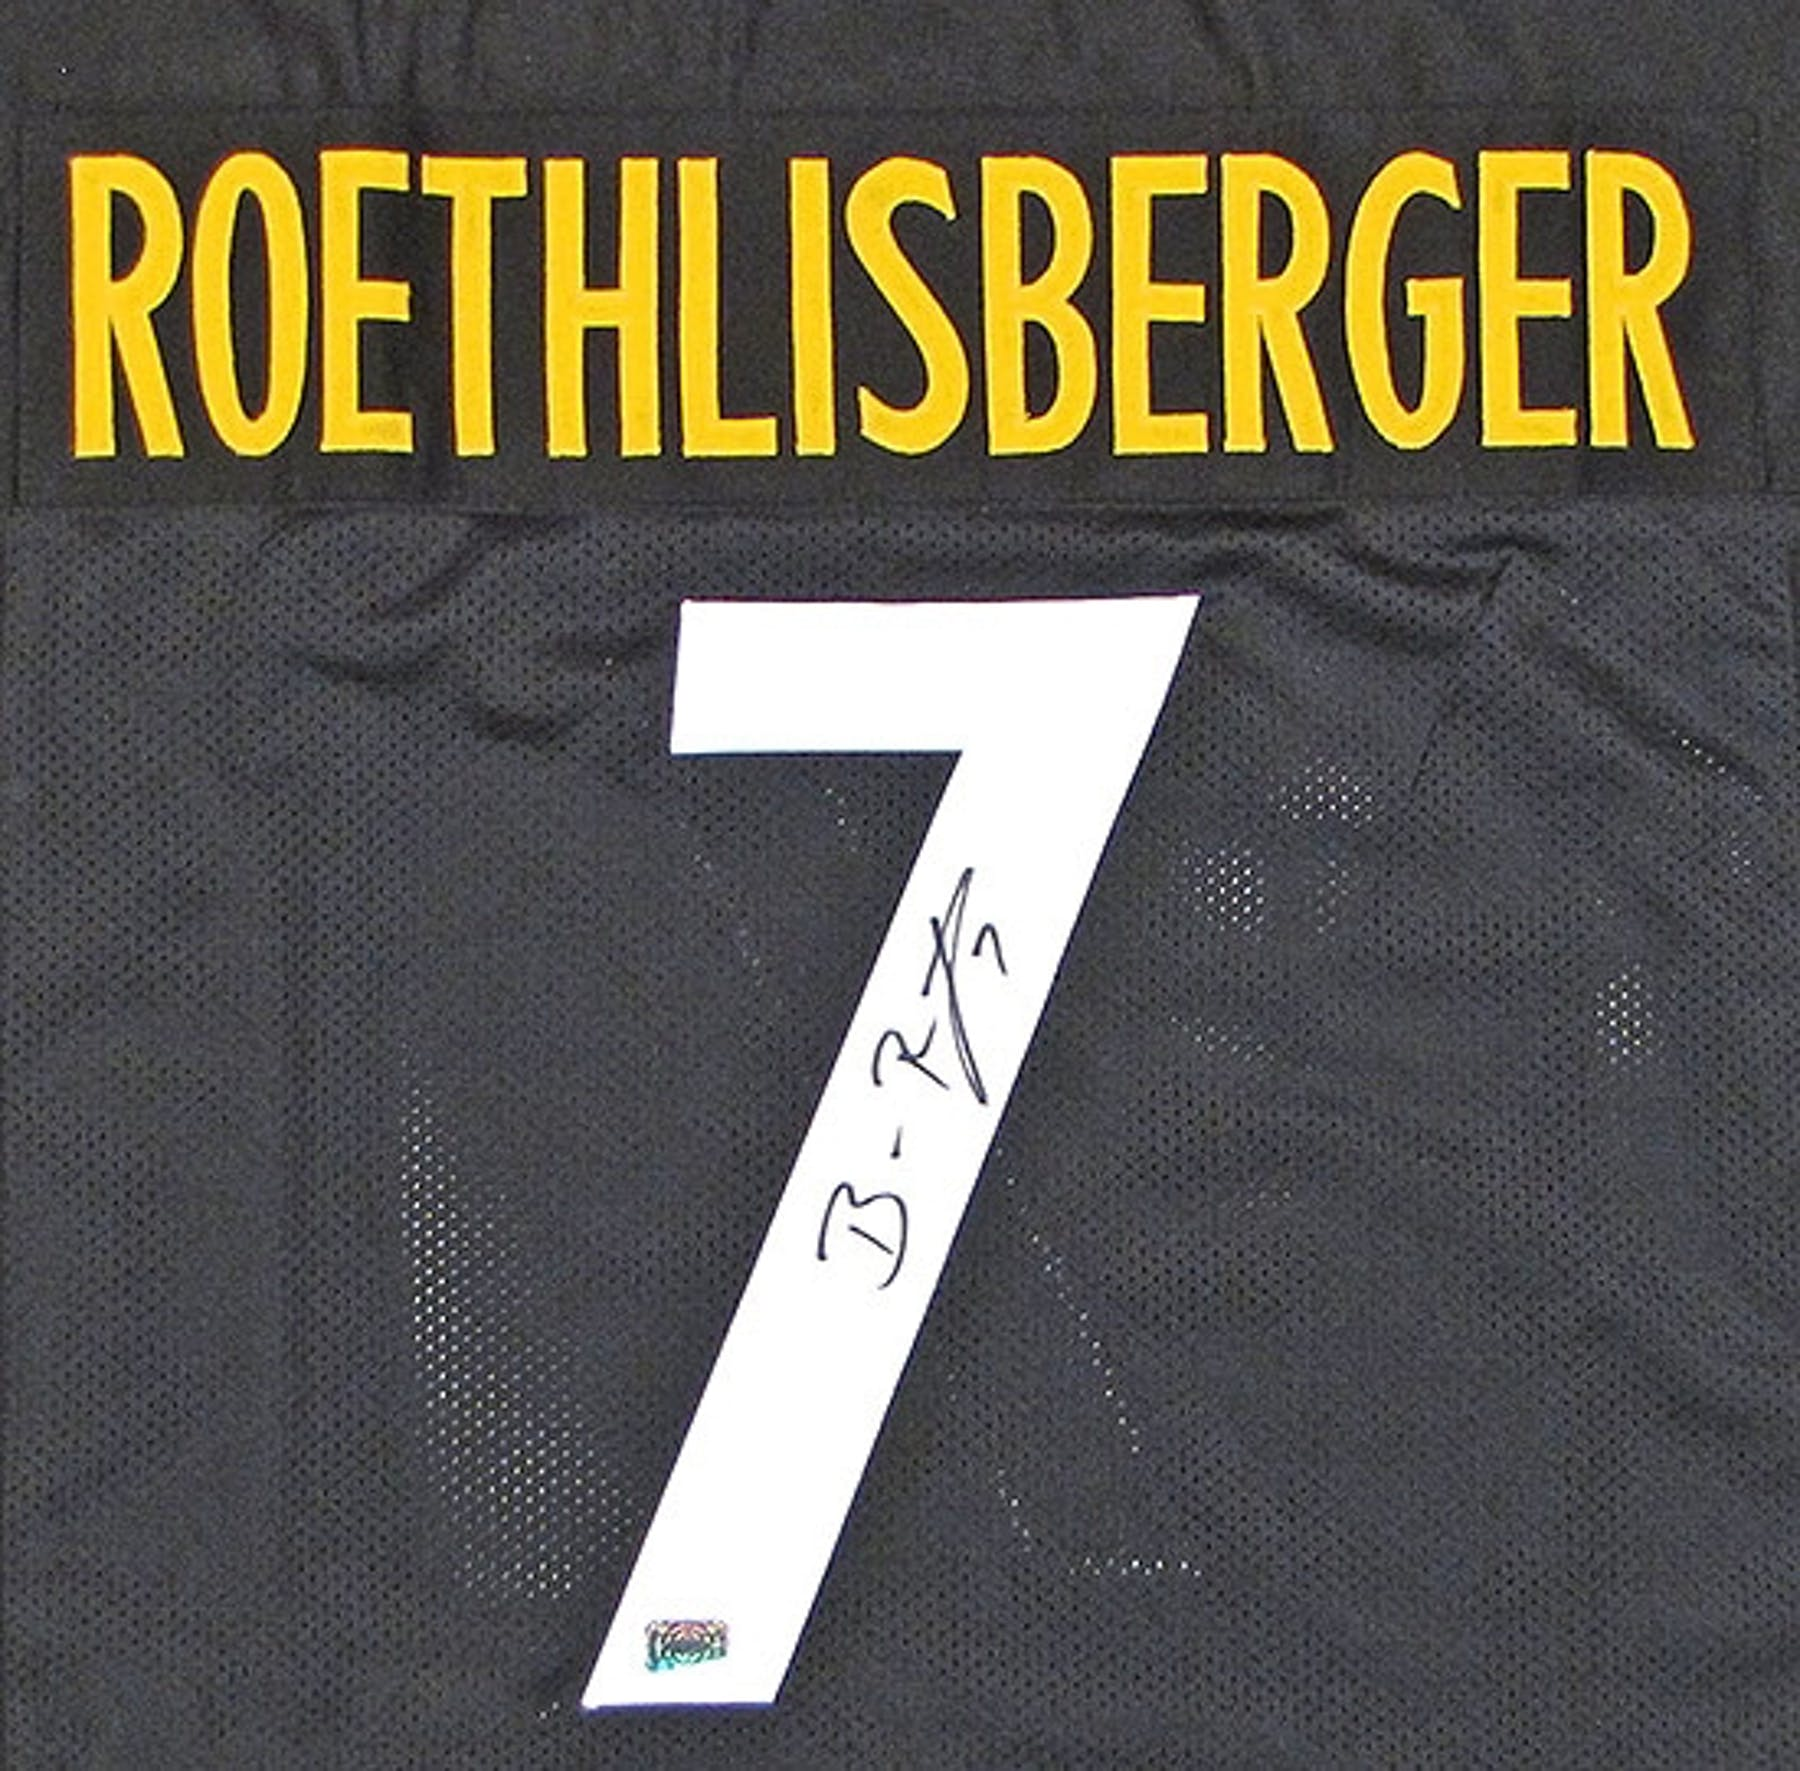 4dca45e4ca3 Ben Roethlisberger Autographed Pittsburgh Steelers Black Jersey